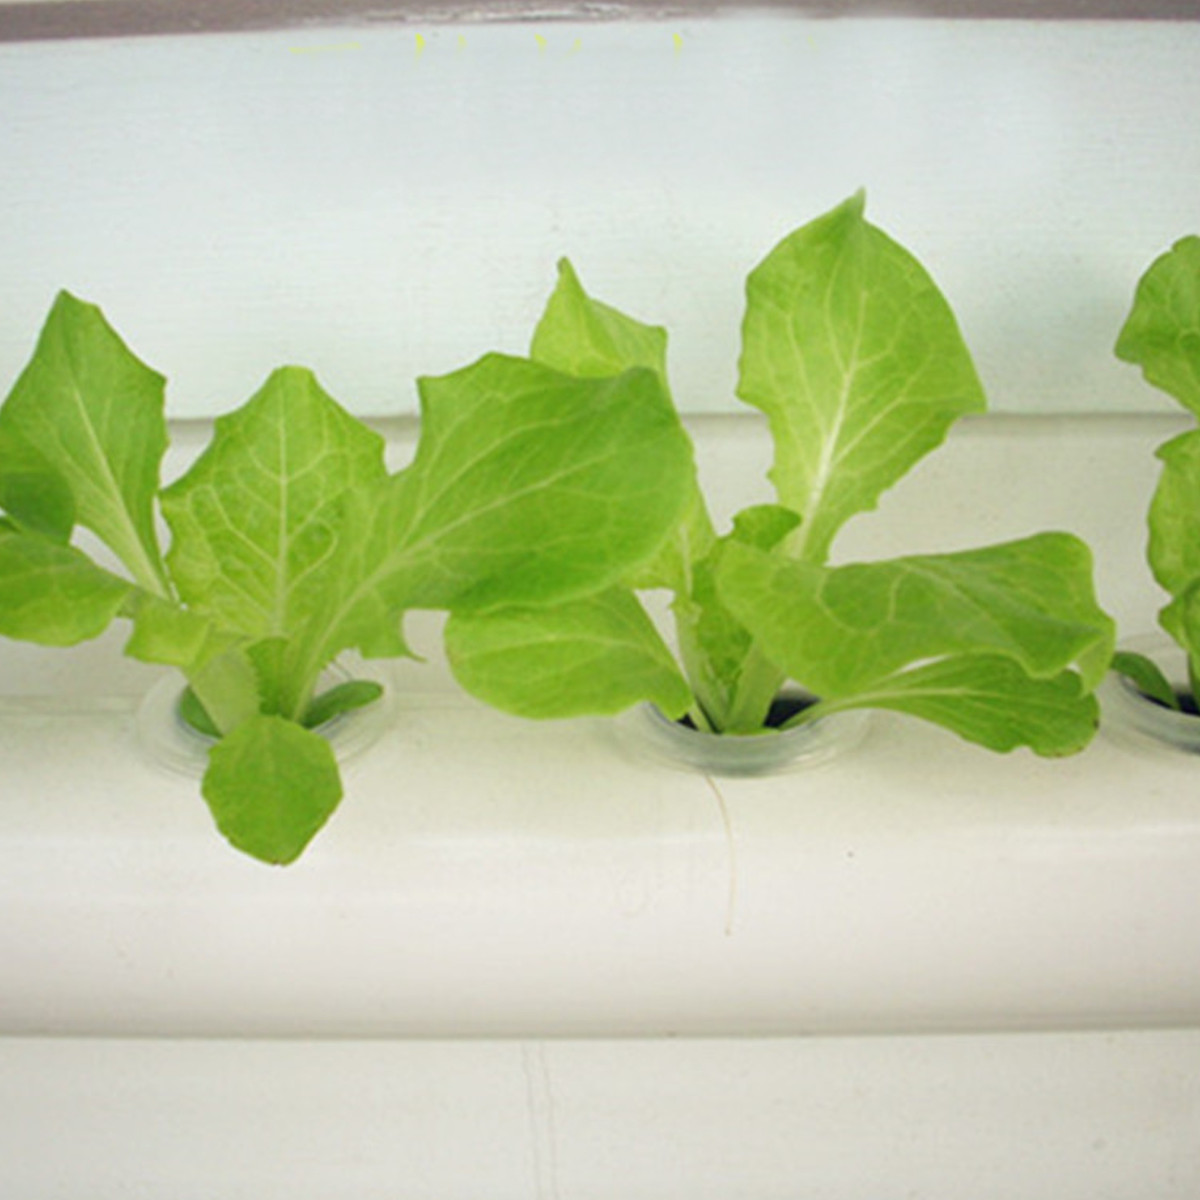 4 Layer 36 Sites Hydroponic Vertical Grow Kit Ebb Flow Deep Water Culture DWC System Garden Vegetable Planting